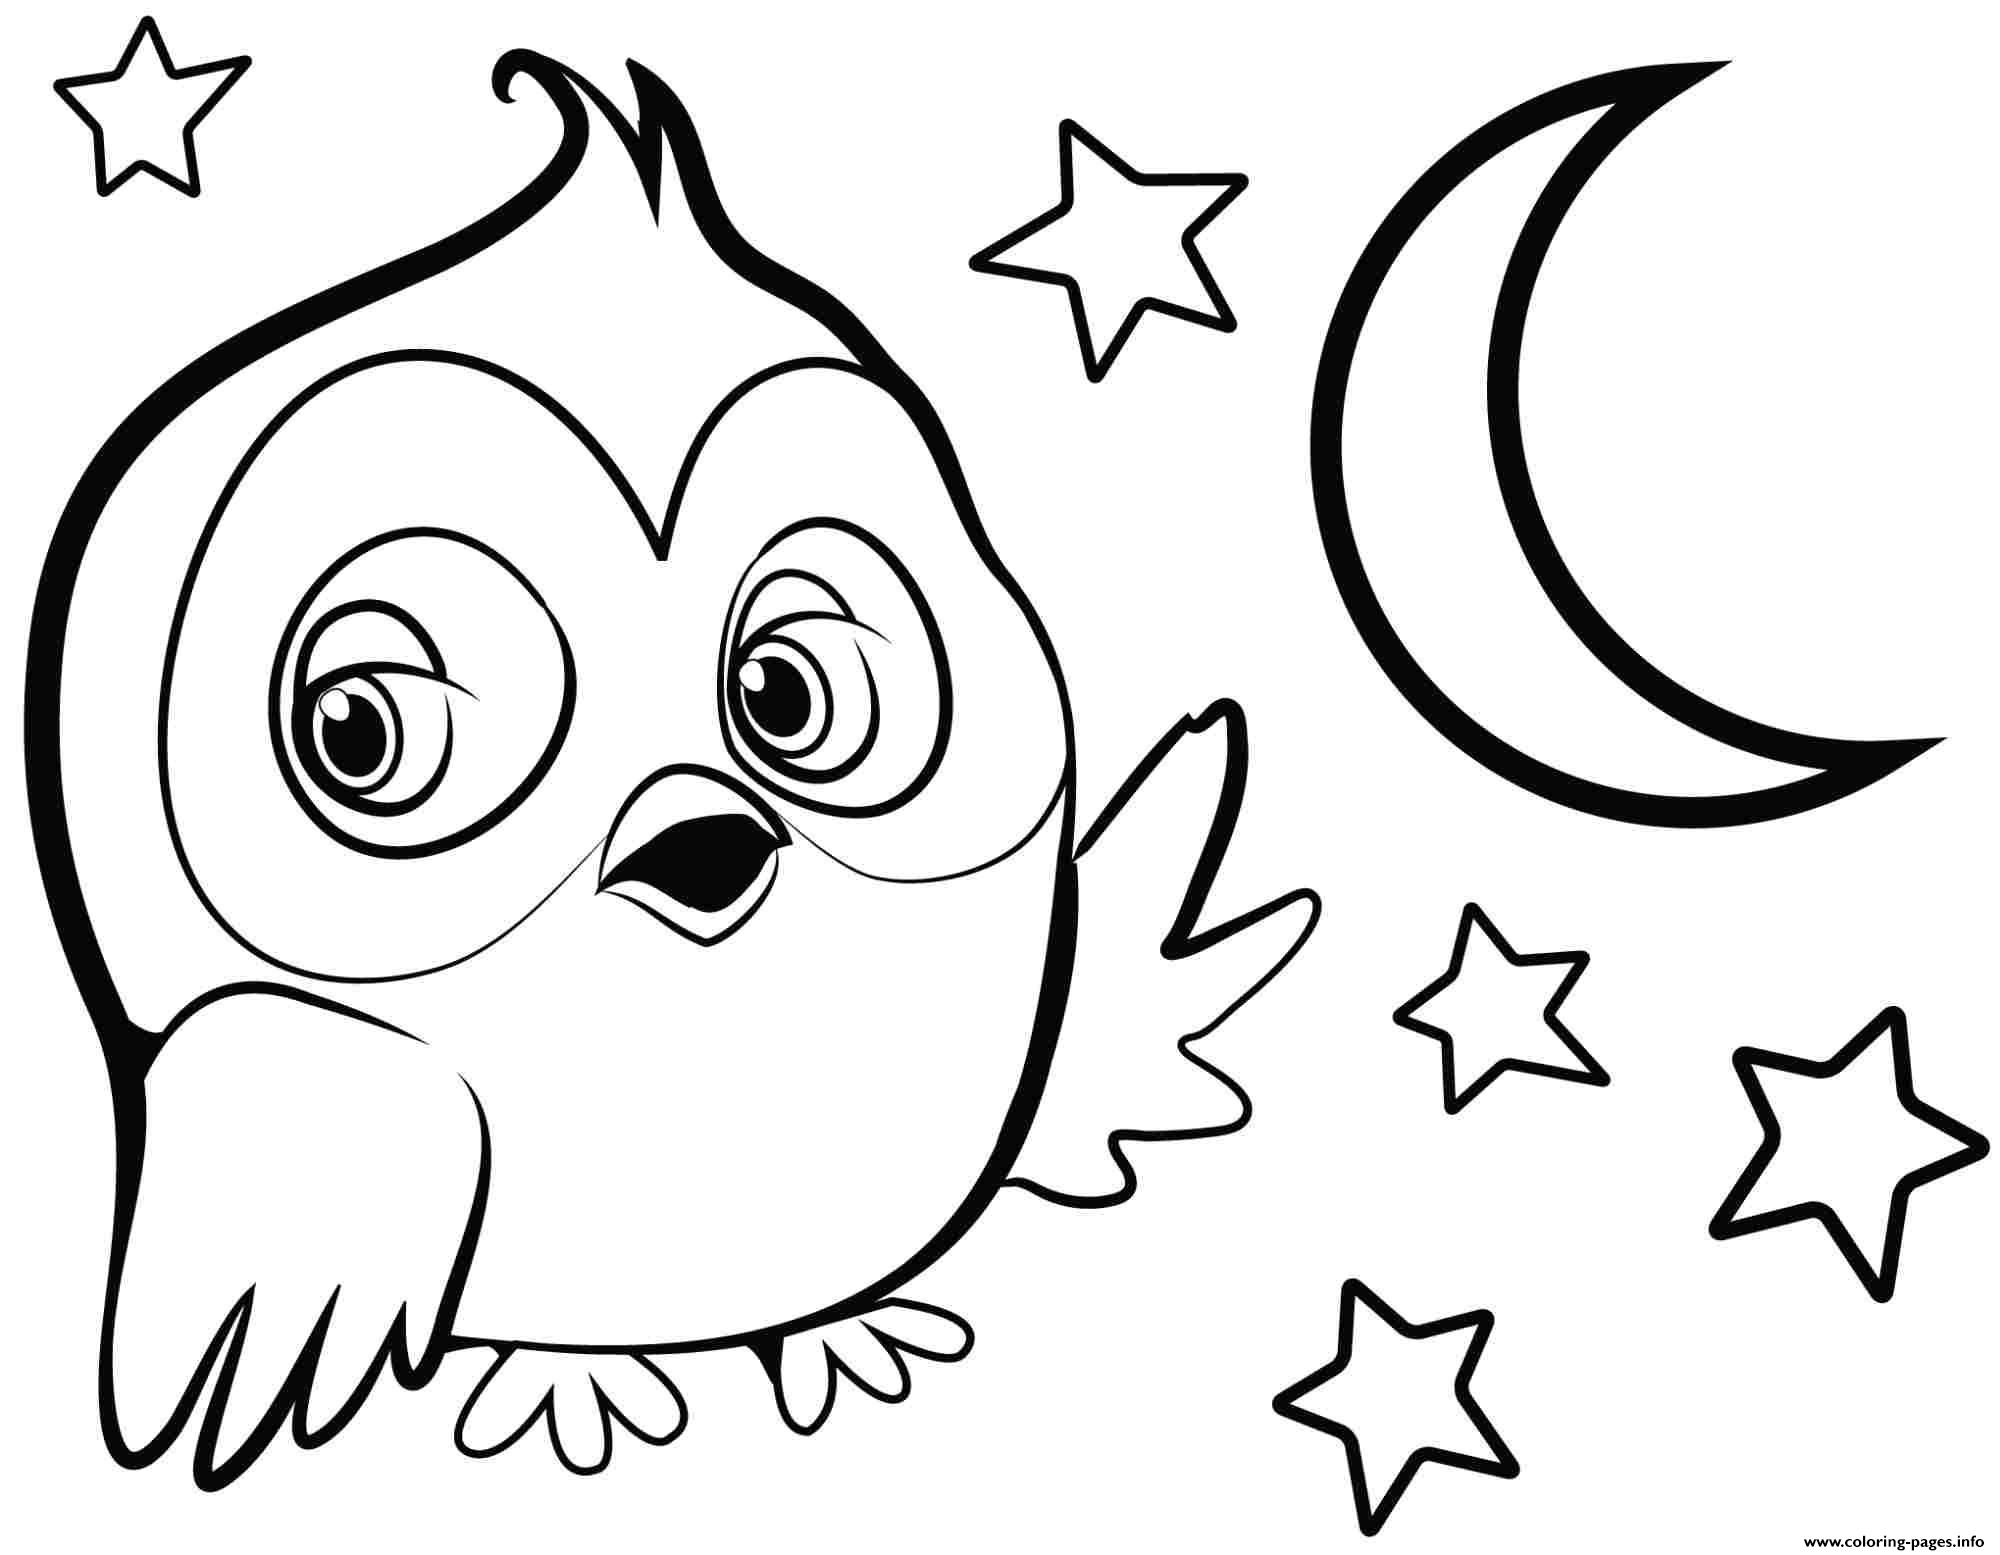 Coloring Pages For Girls Owls At Getcolorings